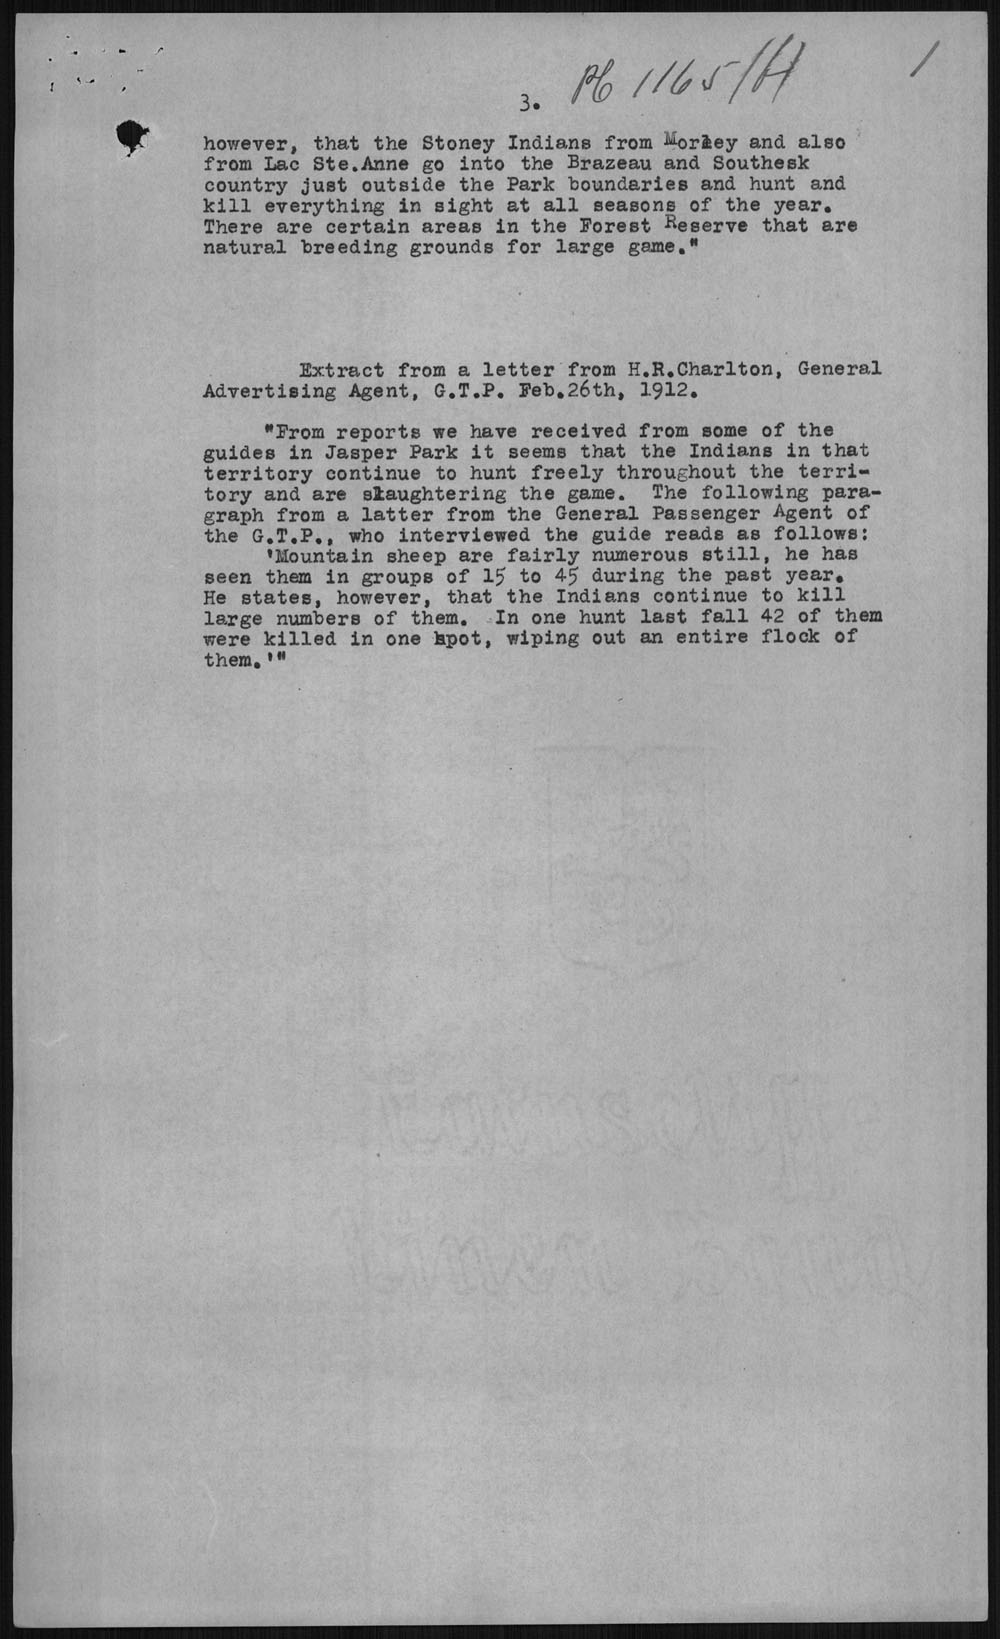 Digitized page of Orders in Council for Image No.: e010877248-v8